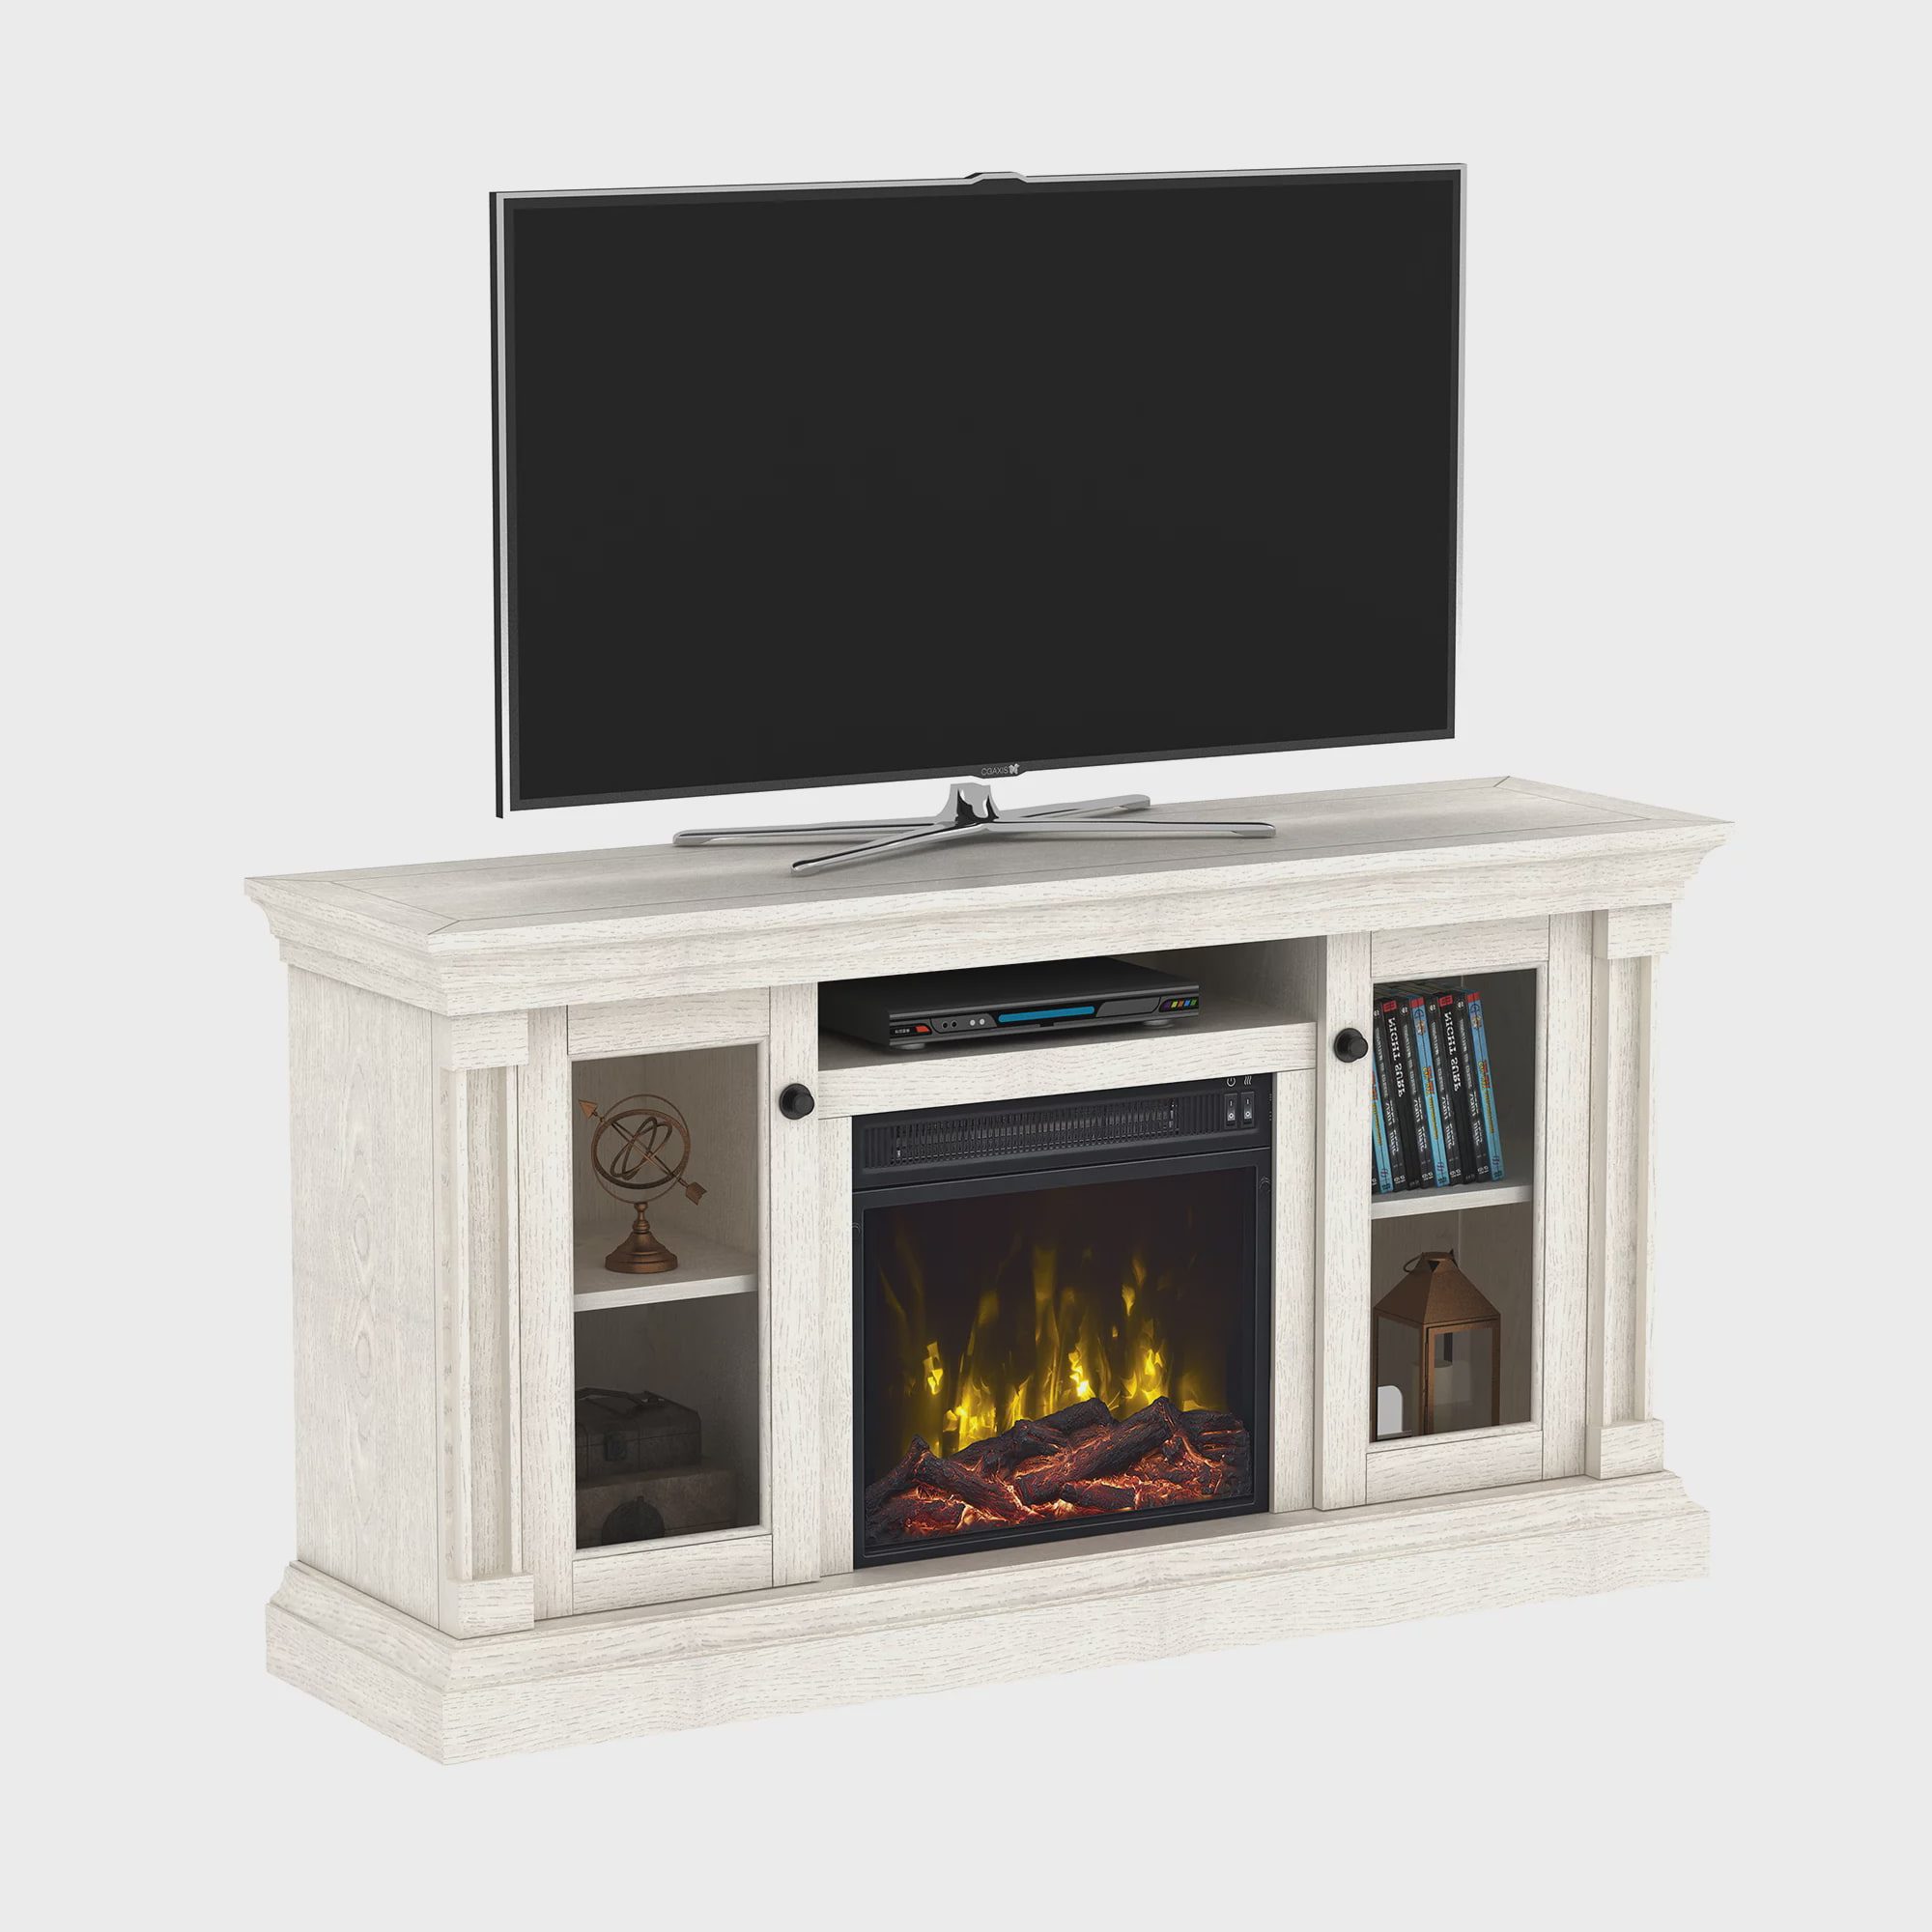 Brayer White Oak Tv Stand For Tvs Up To 60 With Electric Fireplace